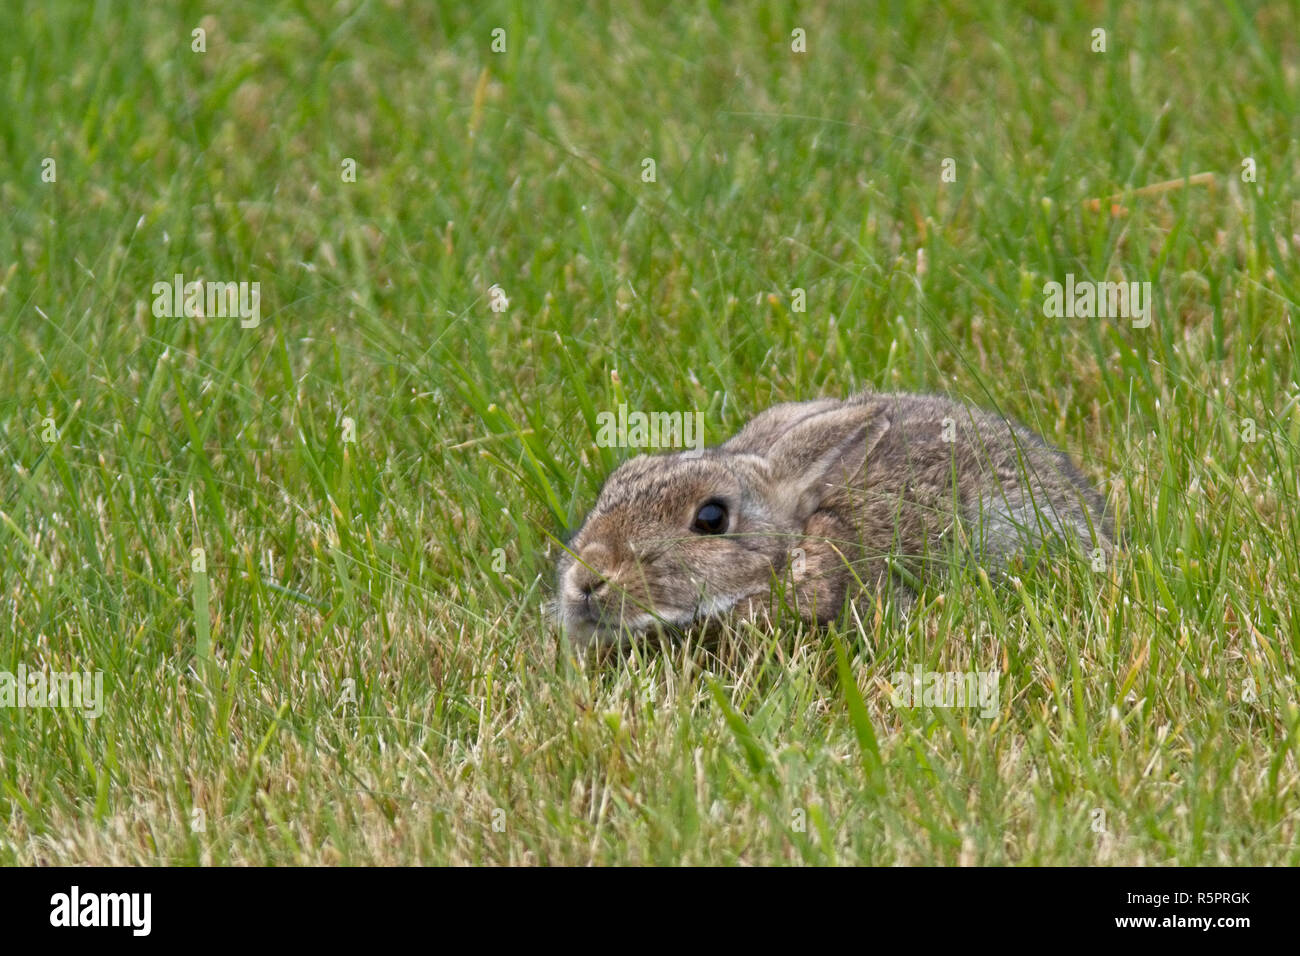 A European Rabbit (Oryctolagus cuniculus) crouched down in the grass, Bressay, Shetland, Scotland, UK. - Stock Image